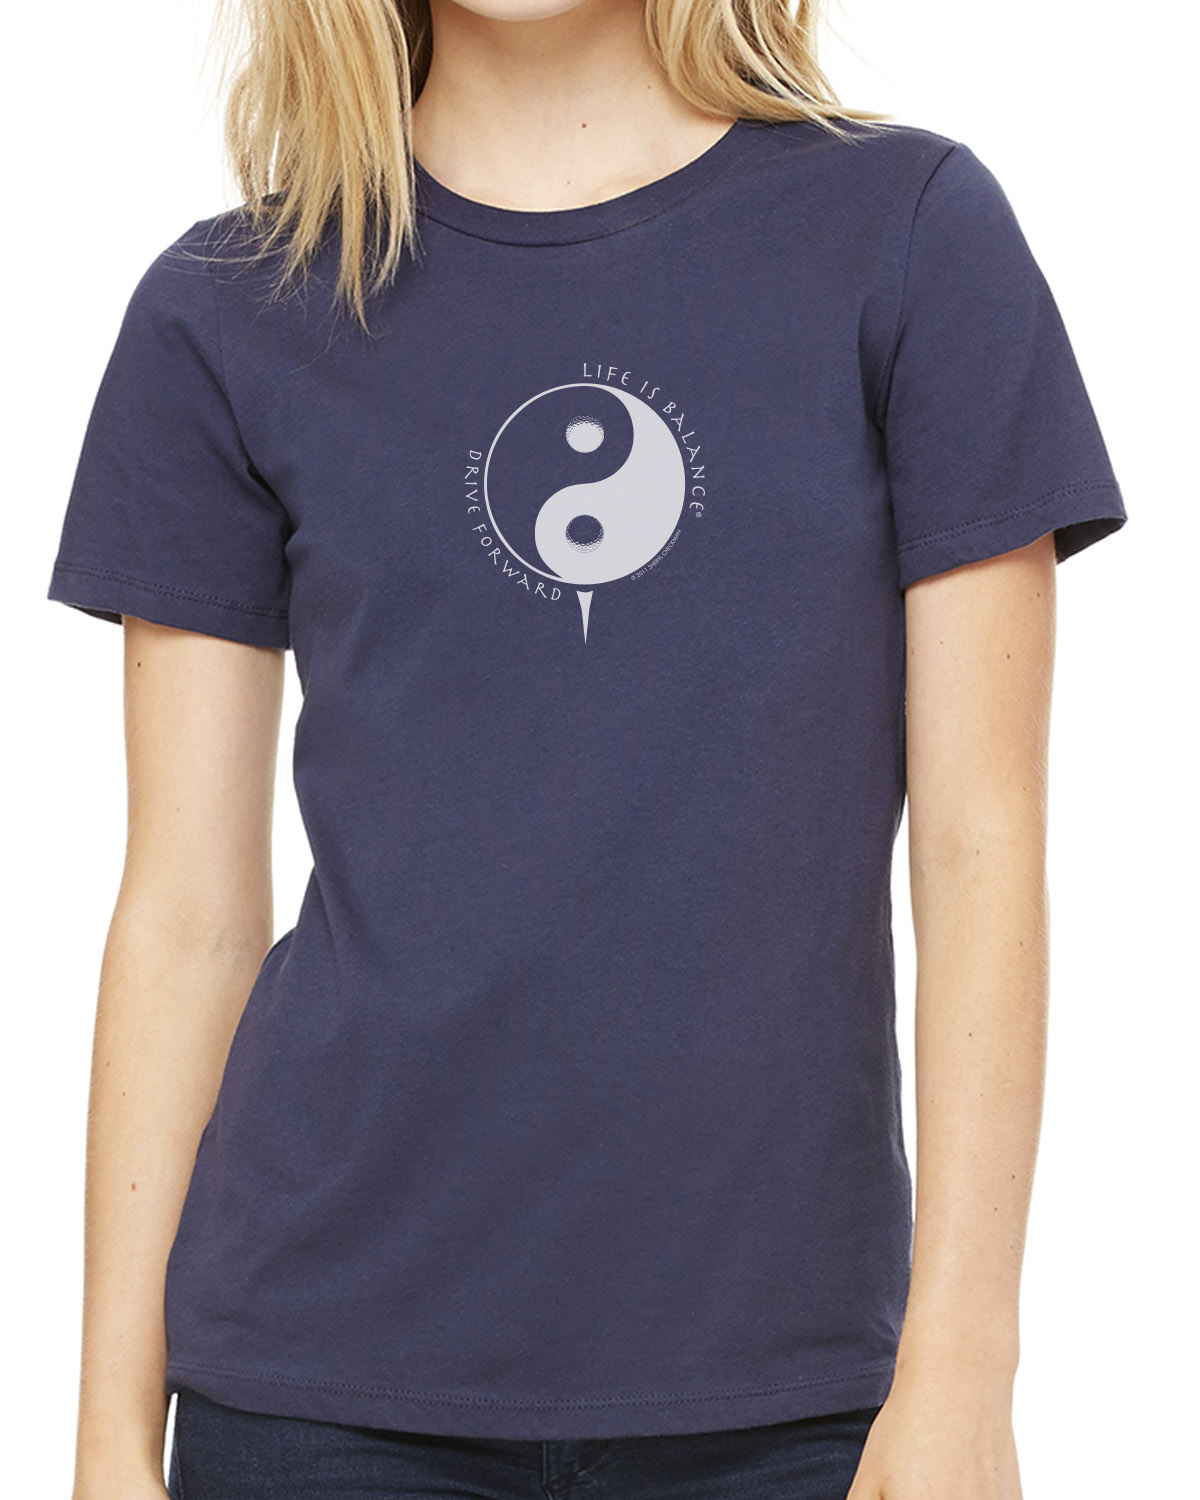 Women's cap sleeve Golf T-shirt (navy)